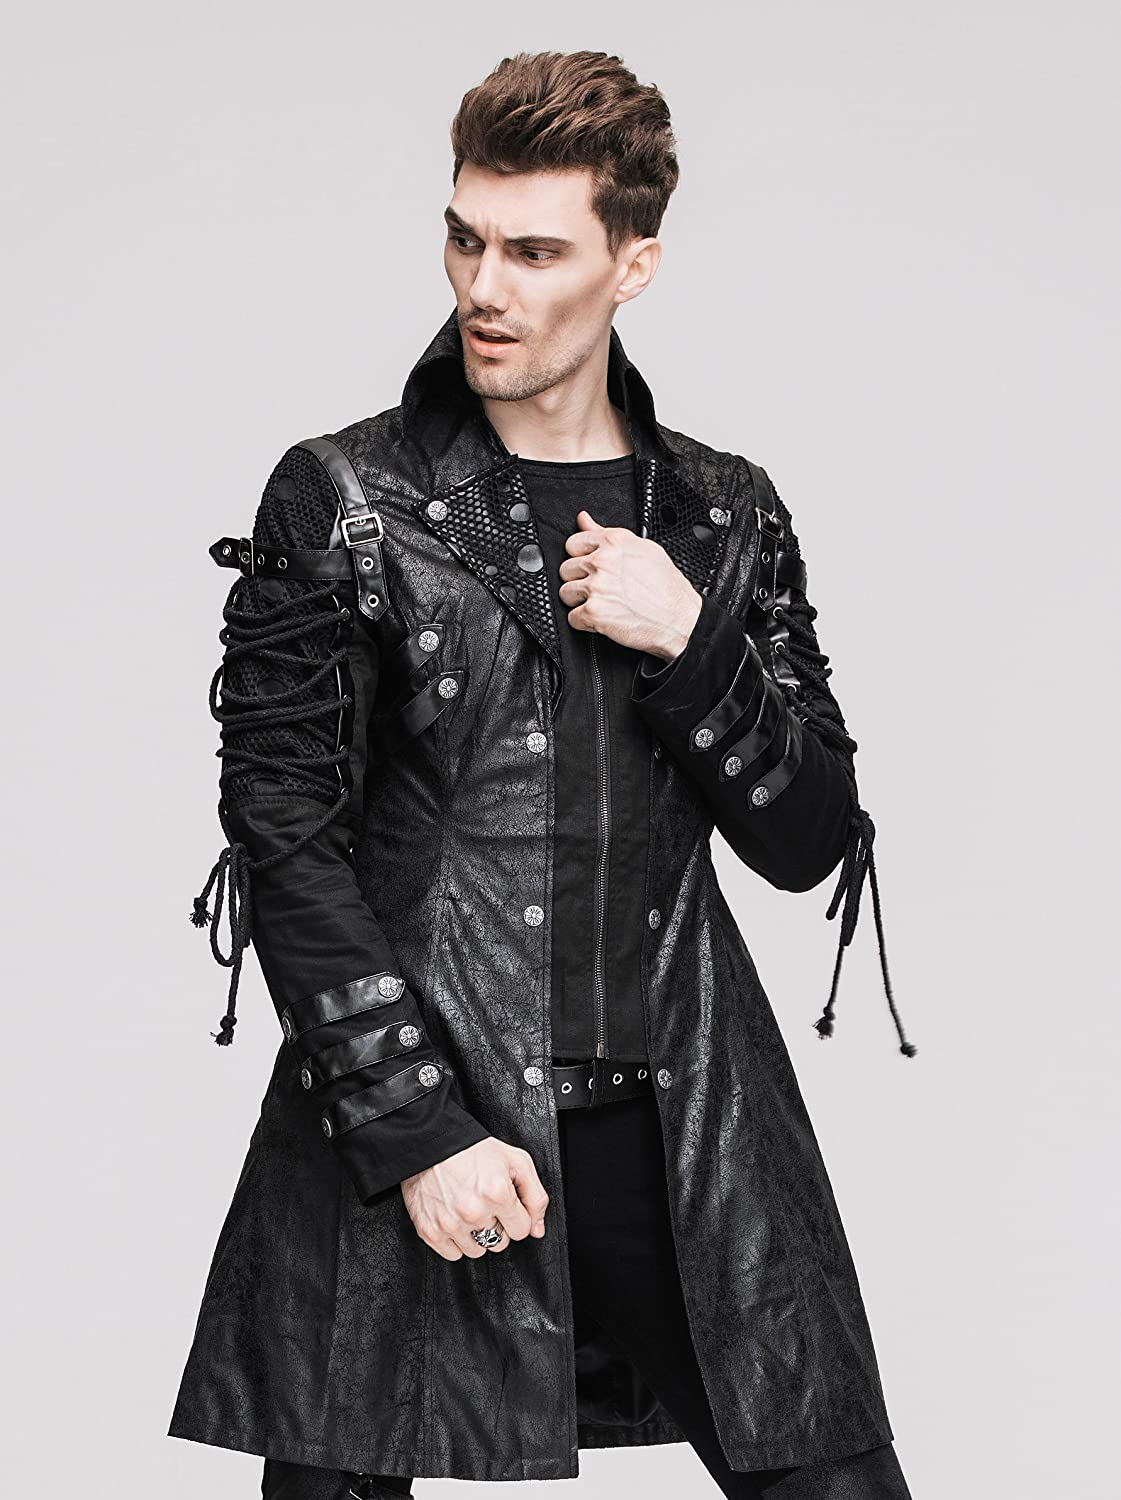 Men's Steampunk Costume Essentials Steampunk Coat Gothic Clothing Victorian Cyberpunk Punk Jacket Renaissance Costume $168.99 AT vintagedancer.com